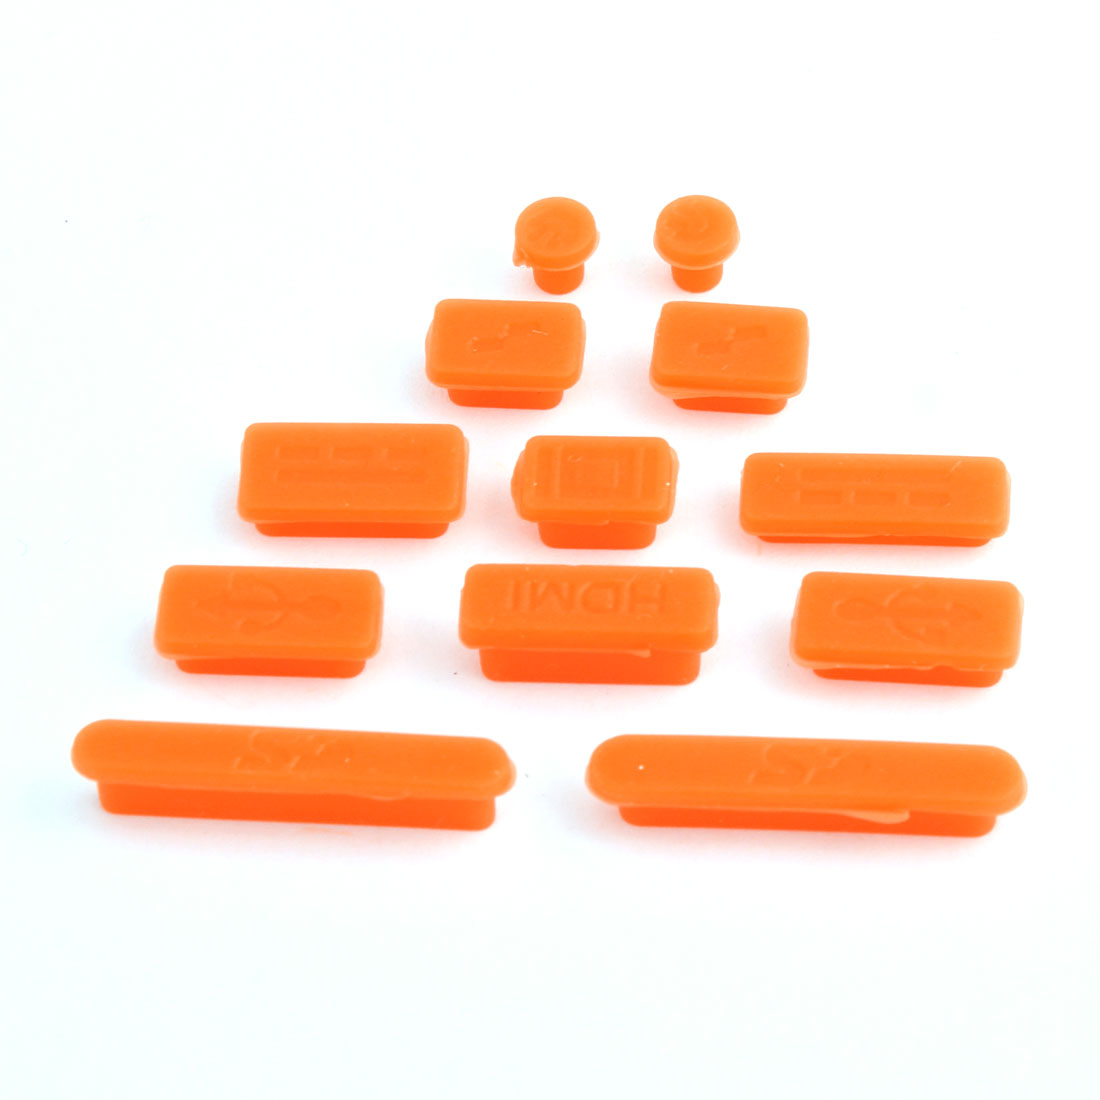 Computer Silicone Anti-Dirt Cover Notebook Anti Dust Connector Set Orange 12 in 1 for Macbook Retina